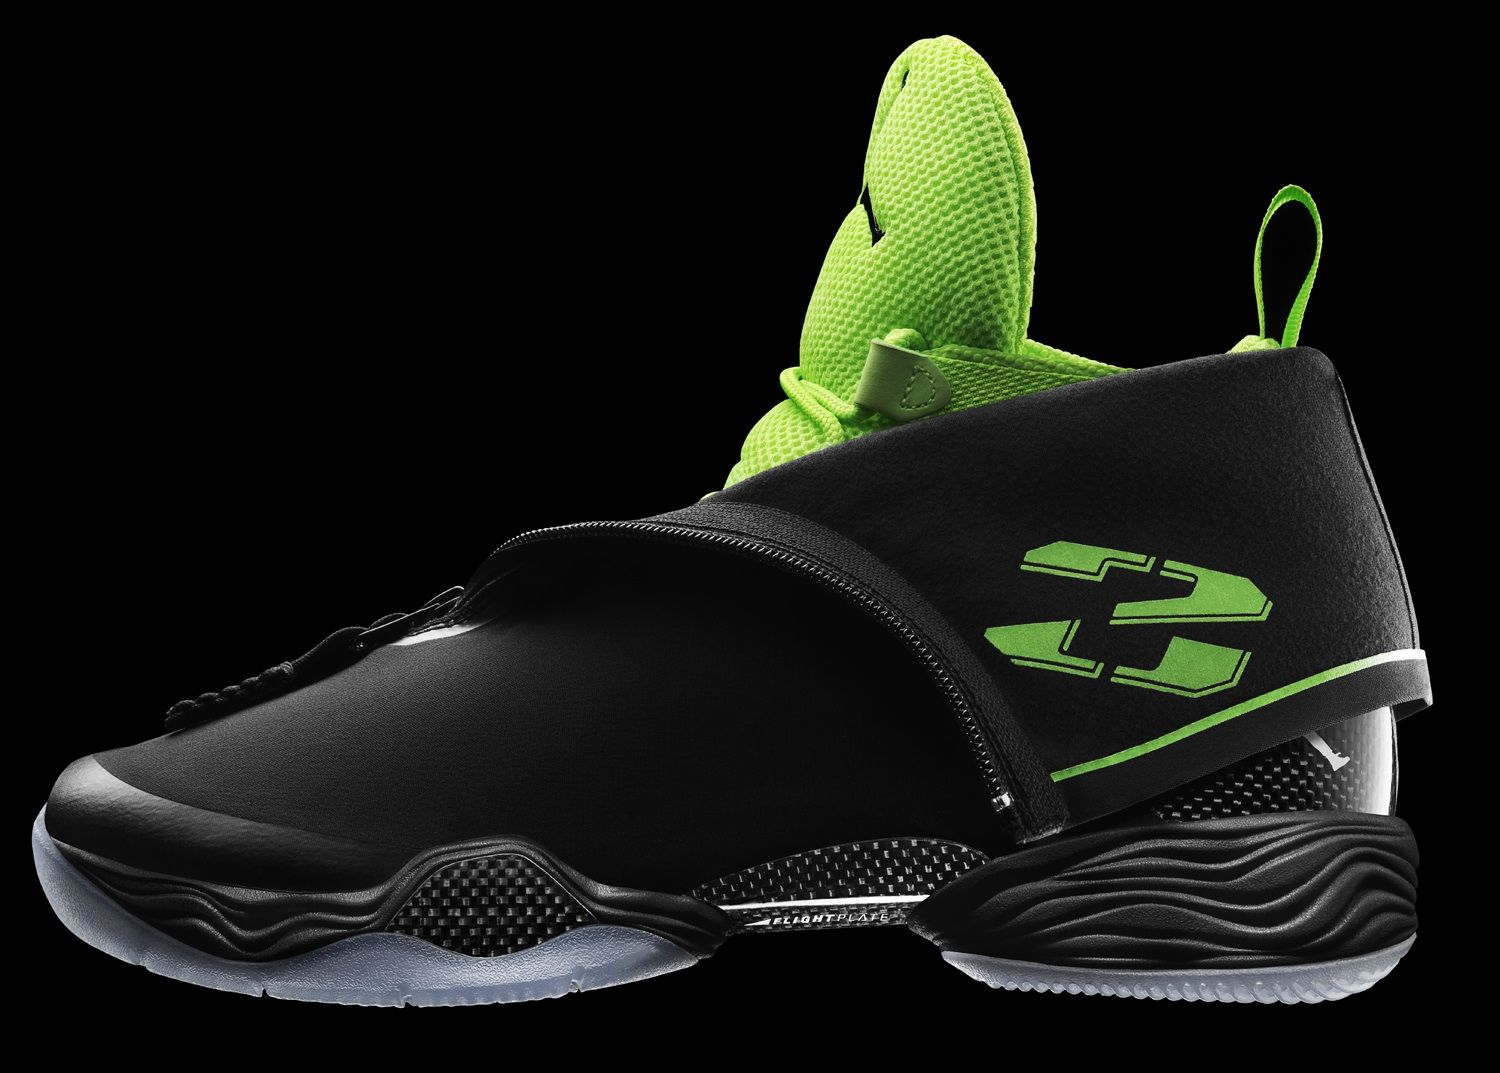 Jordan Brand Takes Flight With Launch Of Air Jordan XX8 | Sole Collector